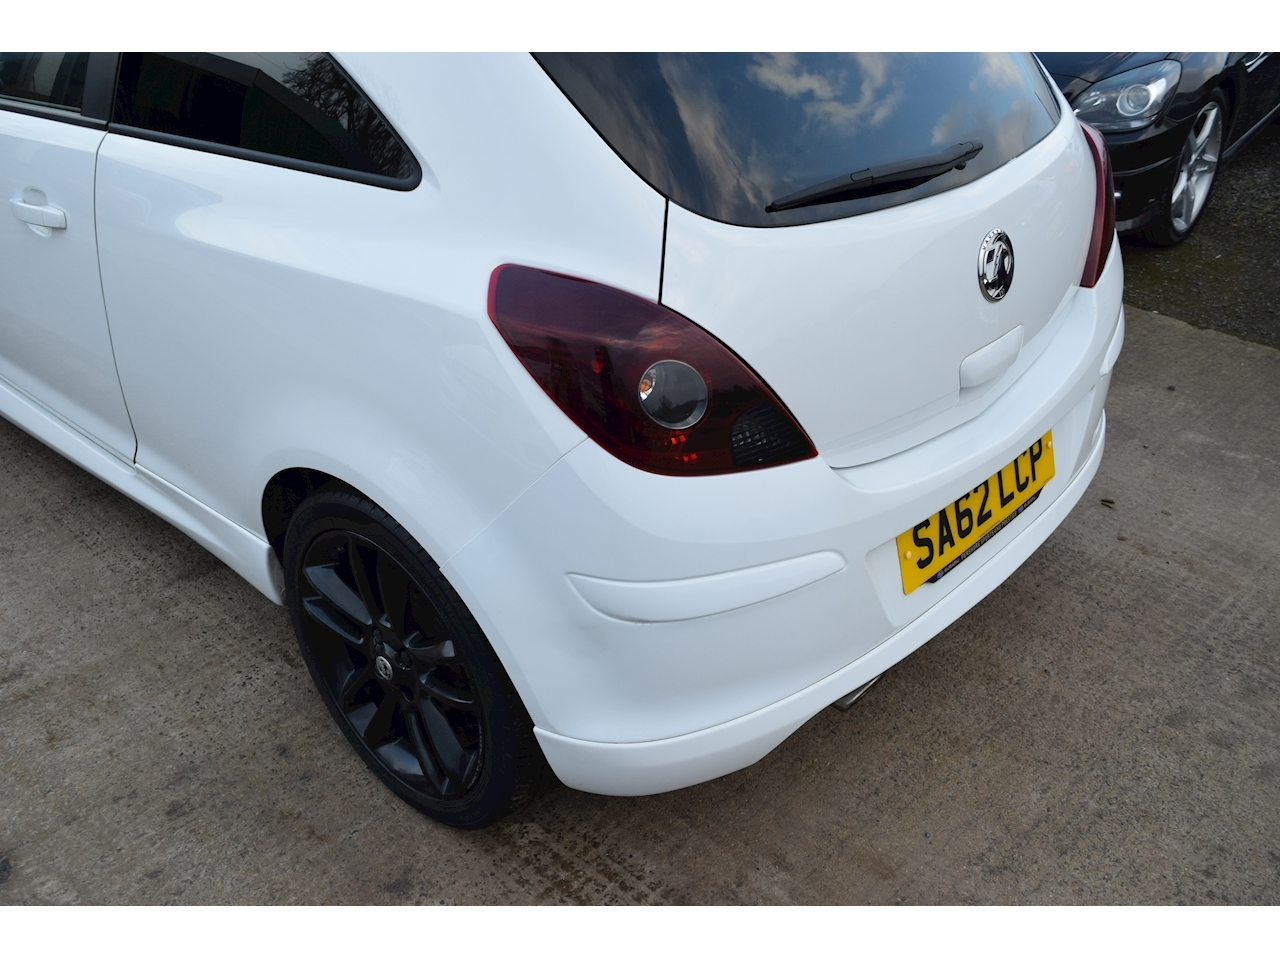 Vauxhall 1.2 i 16v Limited Edition Hatchback 3dr Petrol Manual (a/c) (129 g/km, 84 bhp)